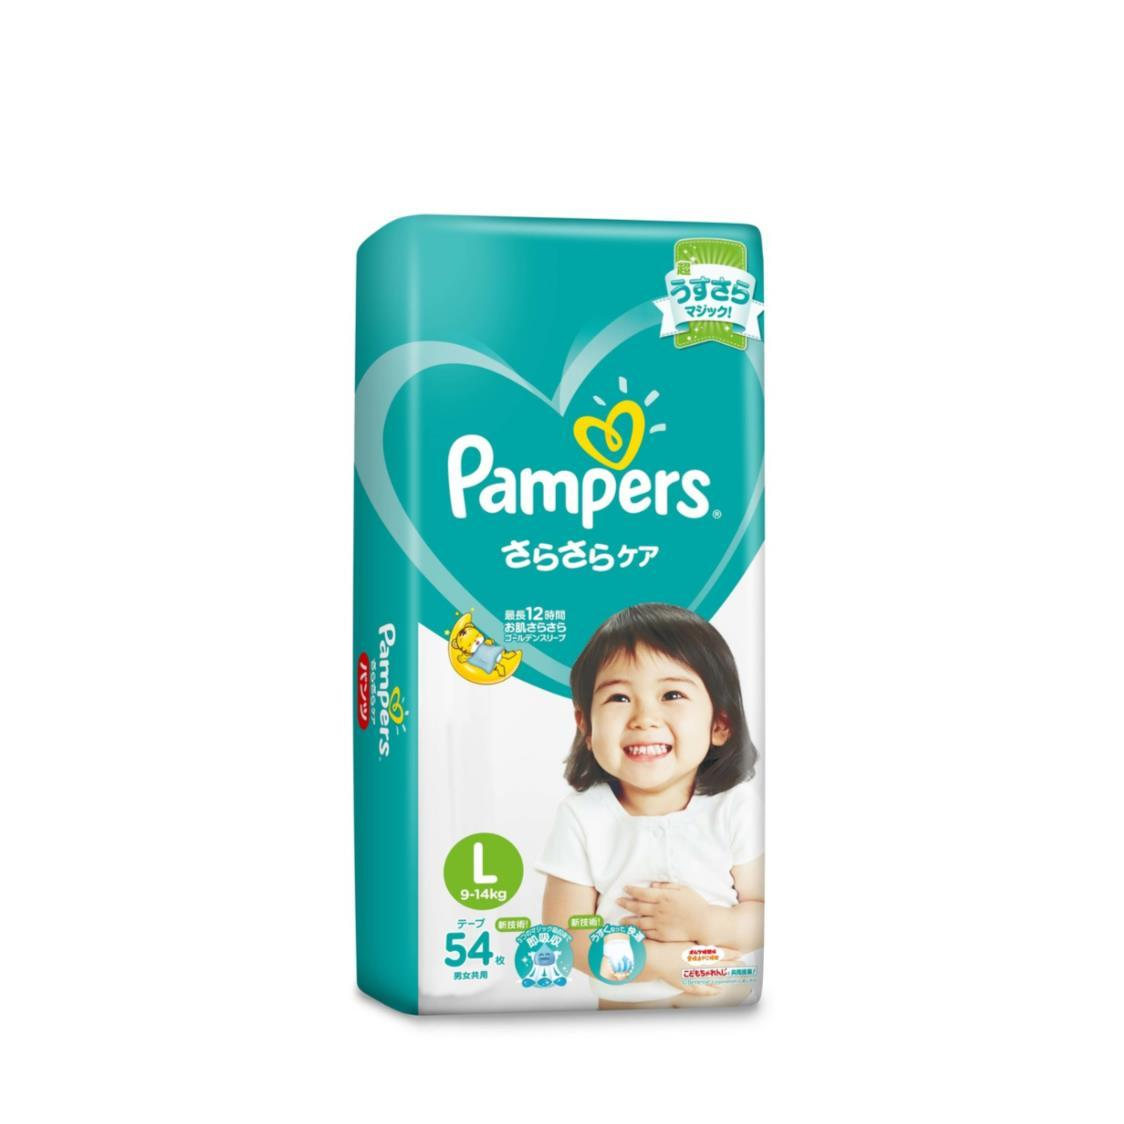 Pampers Baby Dry Diapers L 54s 9-14kg